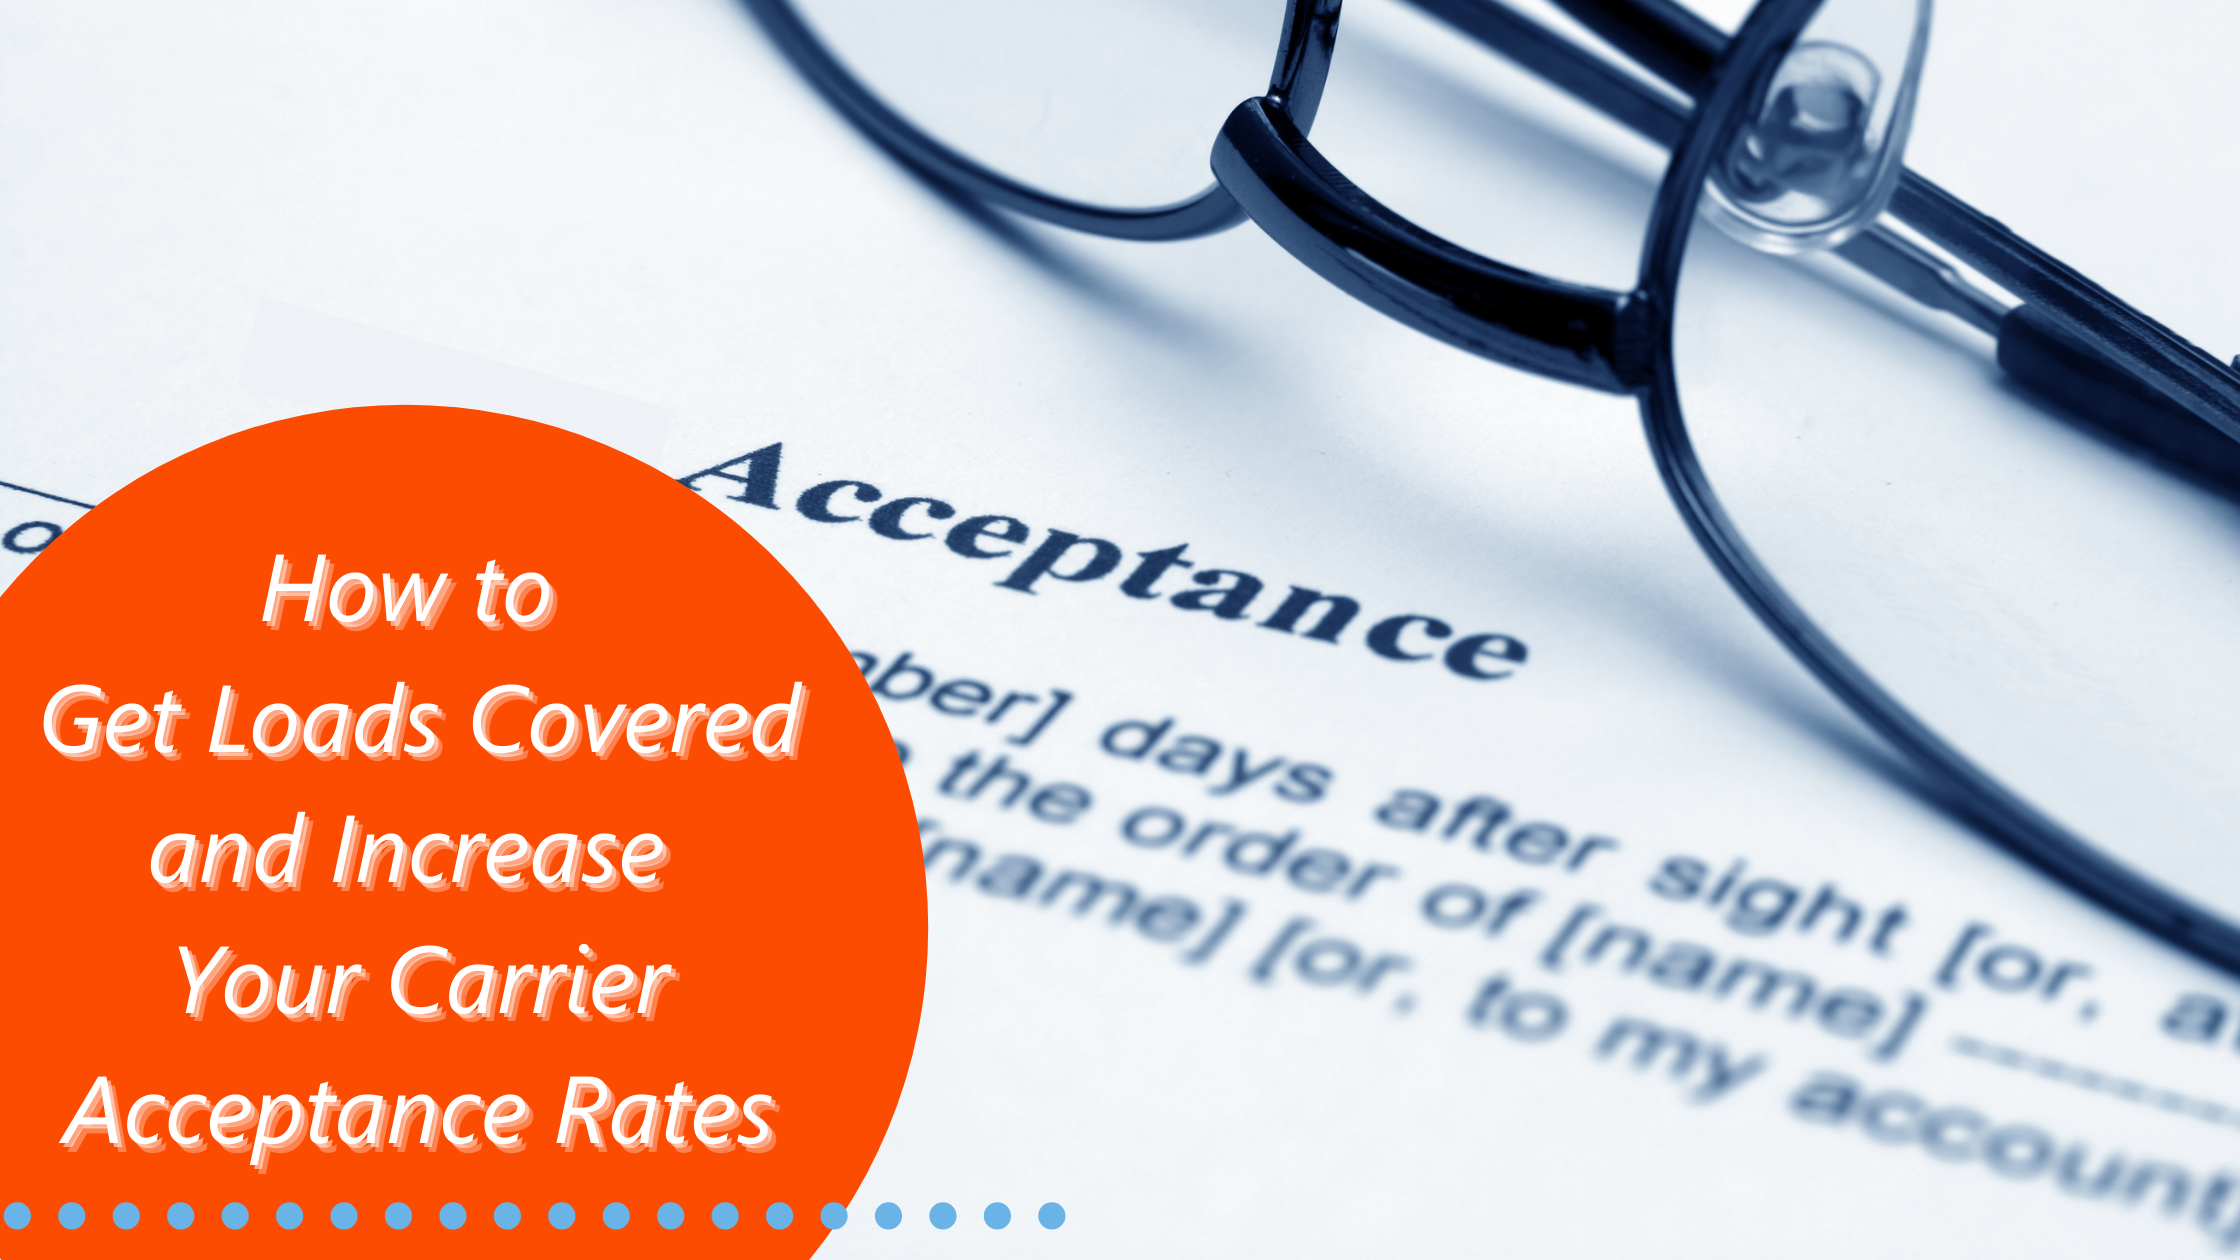 How to Get Loads Covered and Increase Your Carrier Acceptance Rates